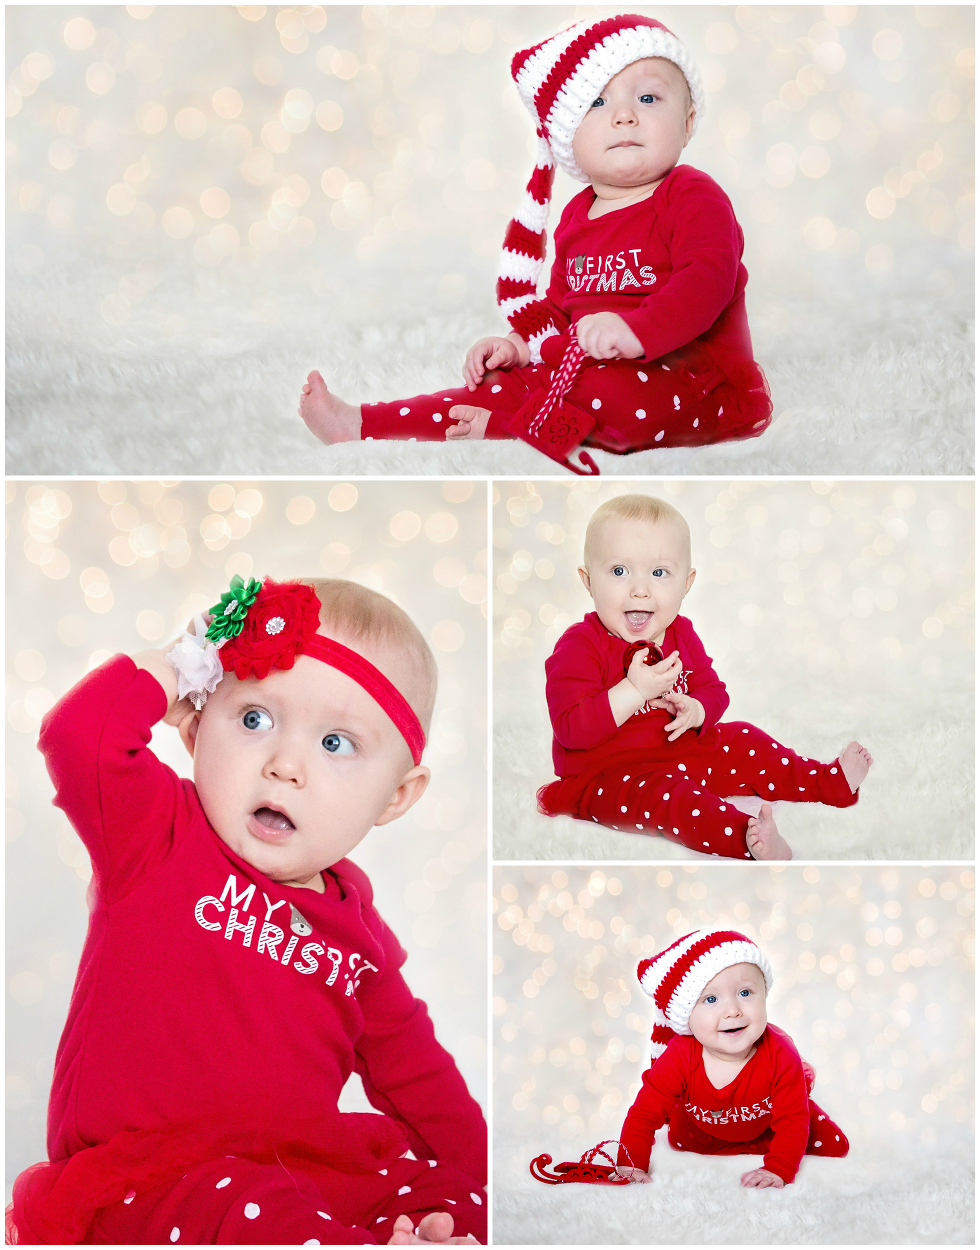 Baby Christmas photo ideas